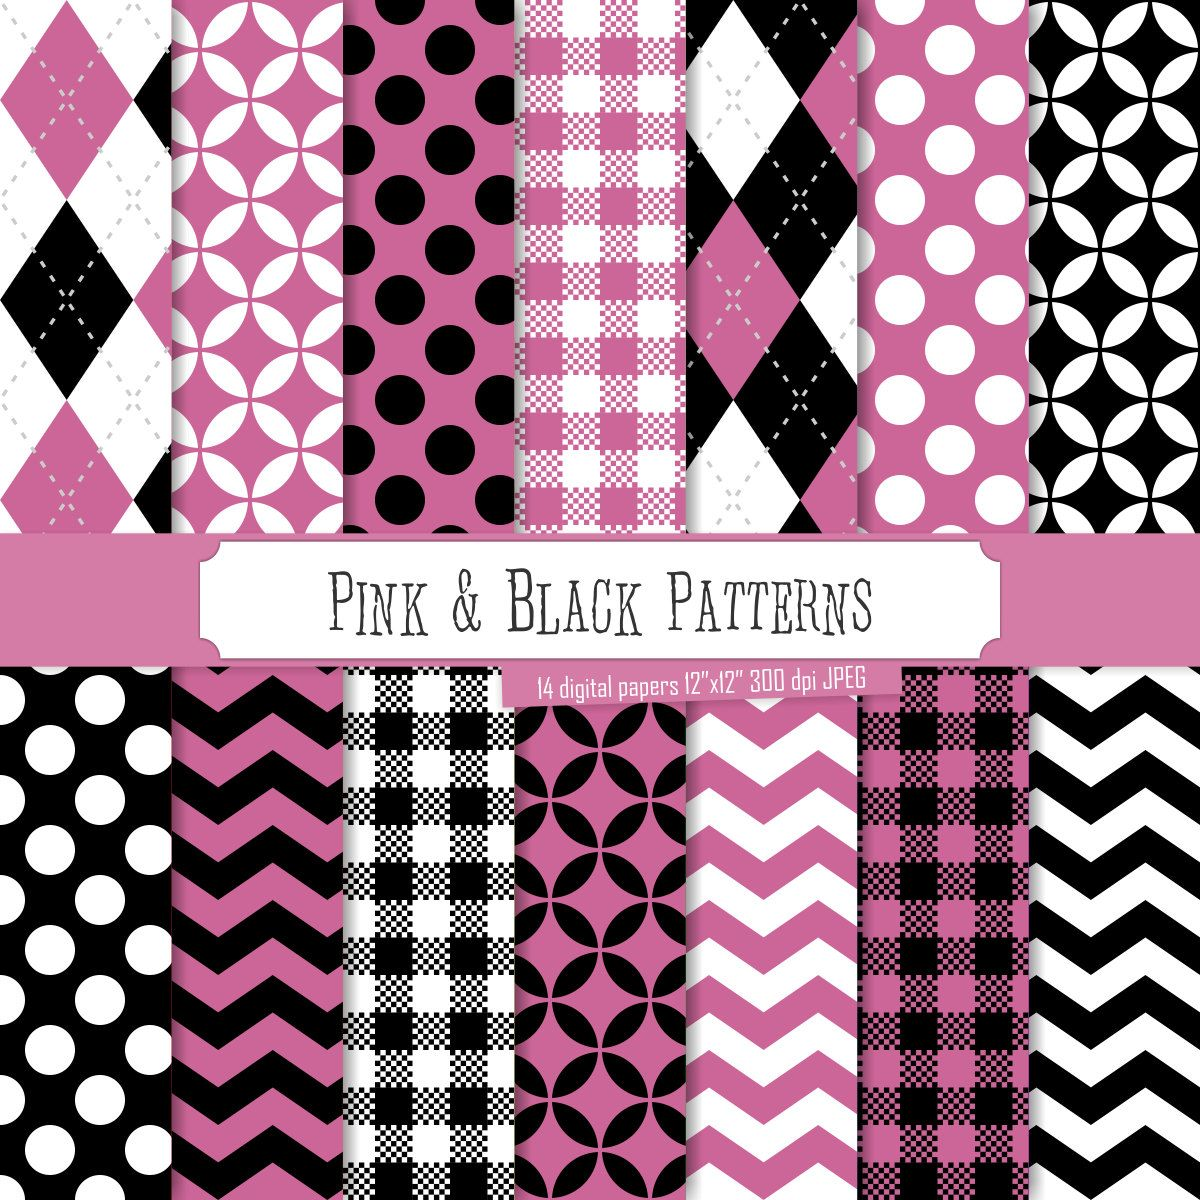 Buy 2 Get 1 Free! Digital Paper Pink & Black Patterns ...